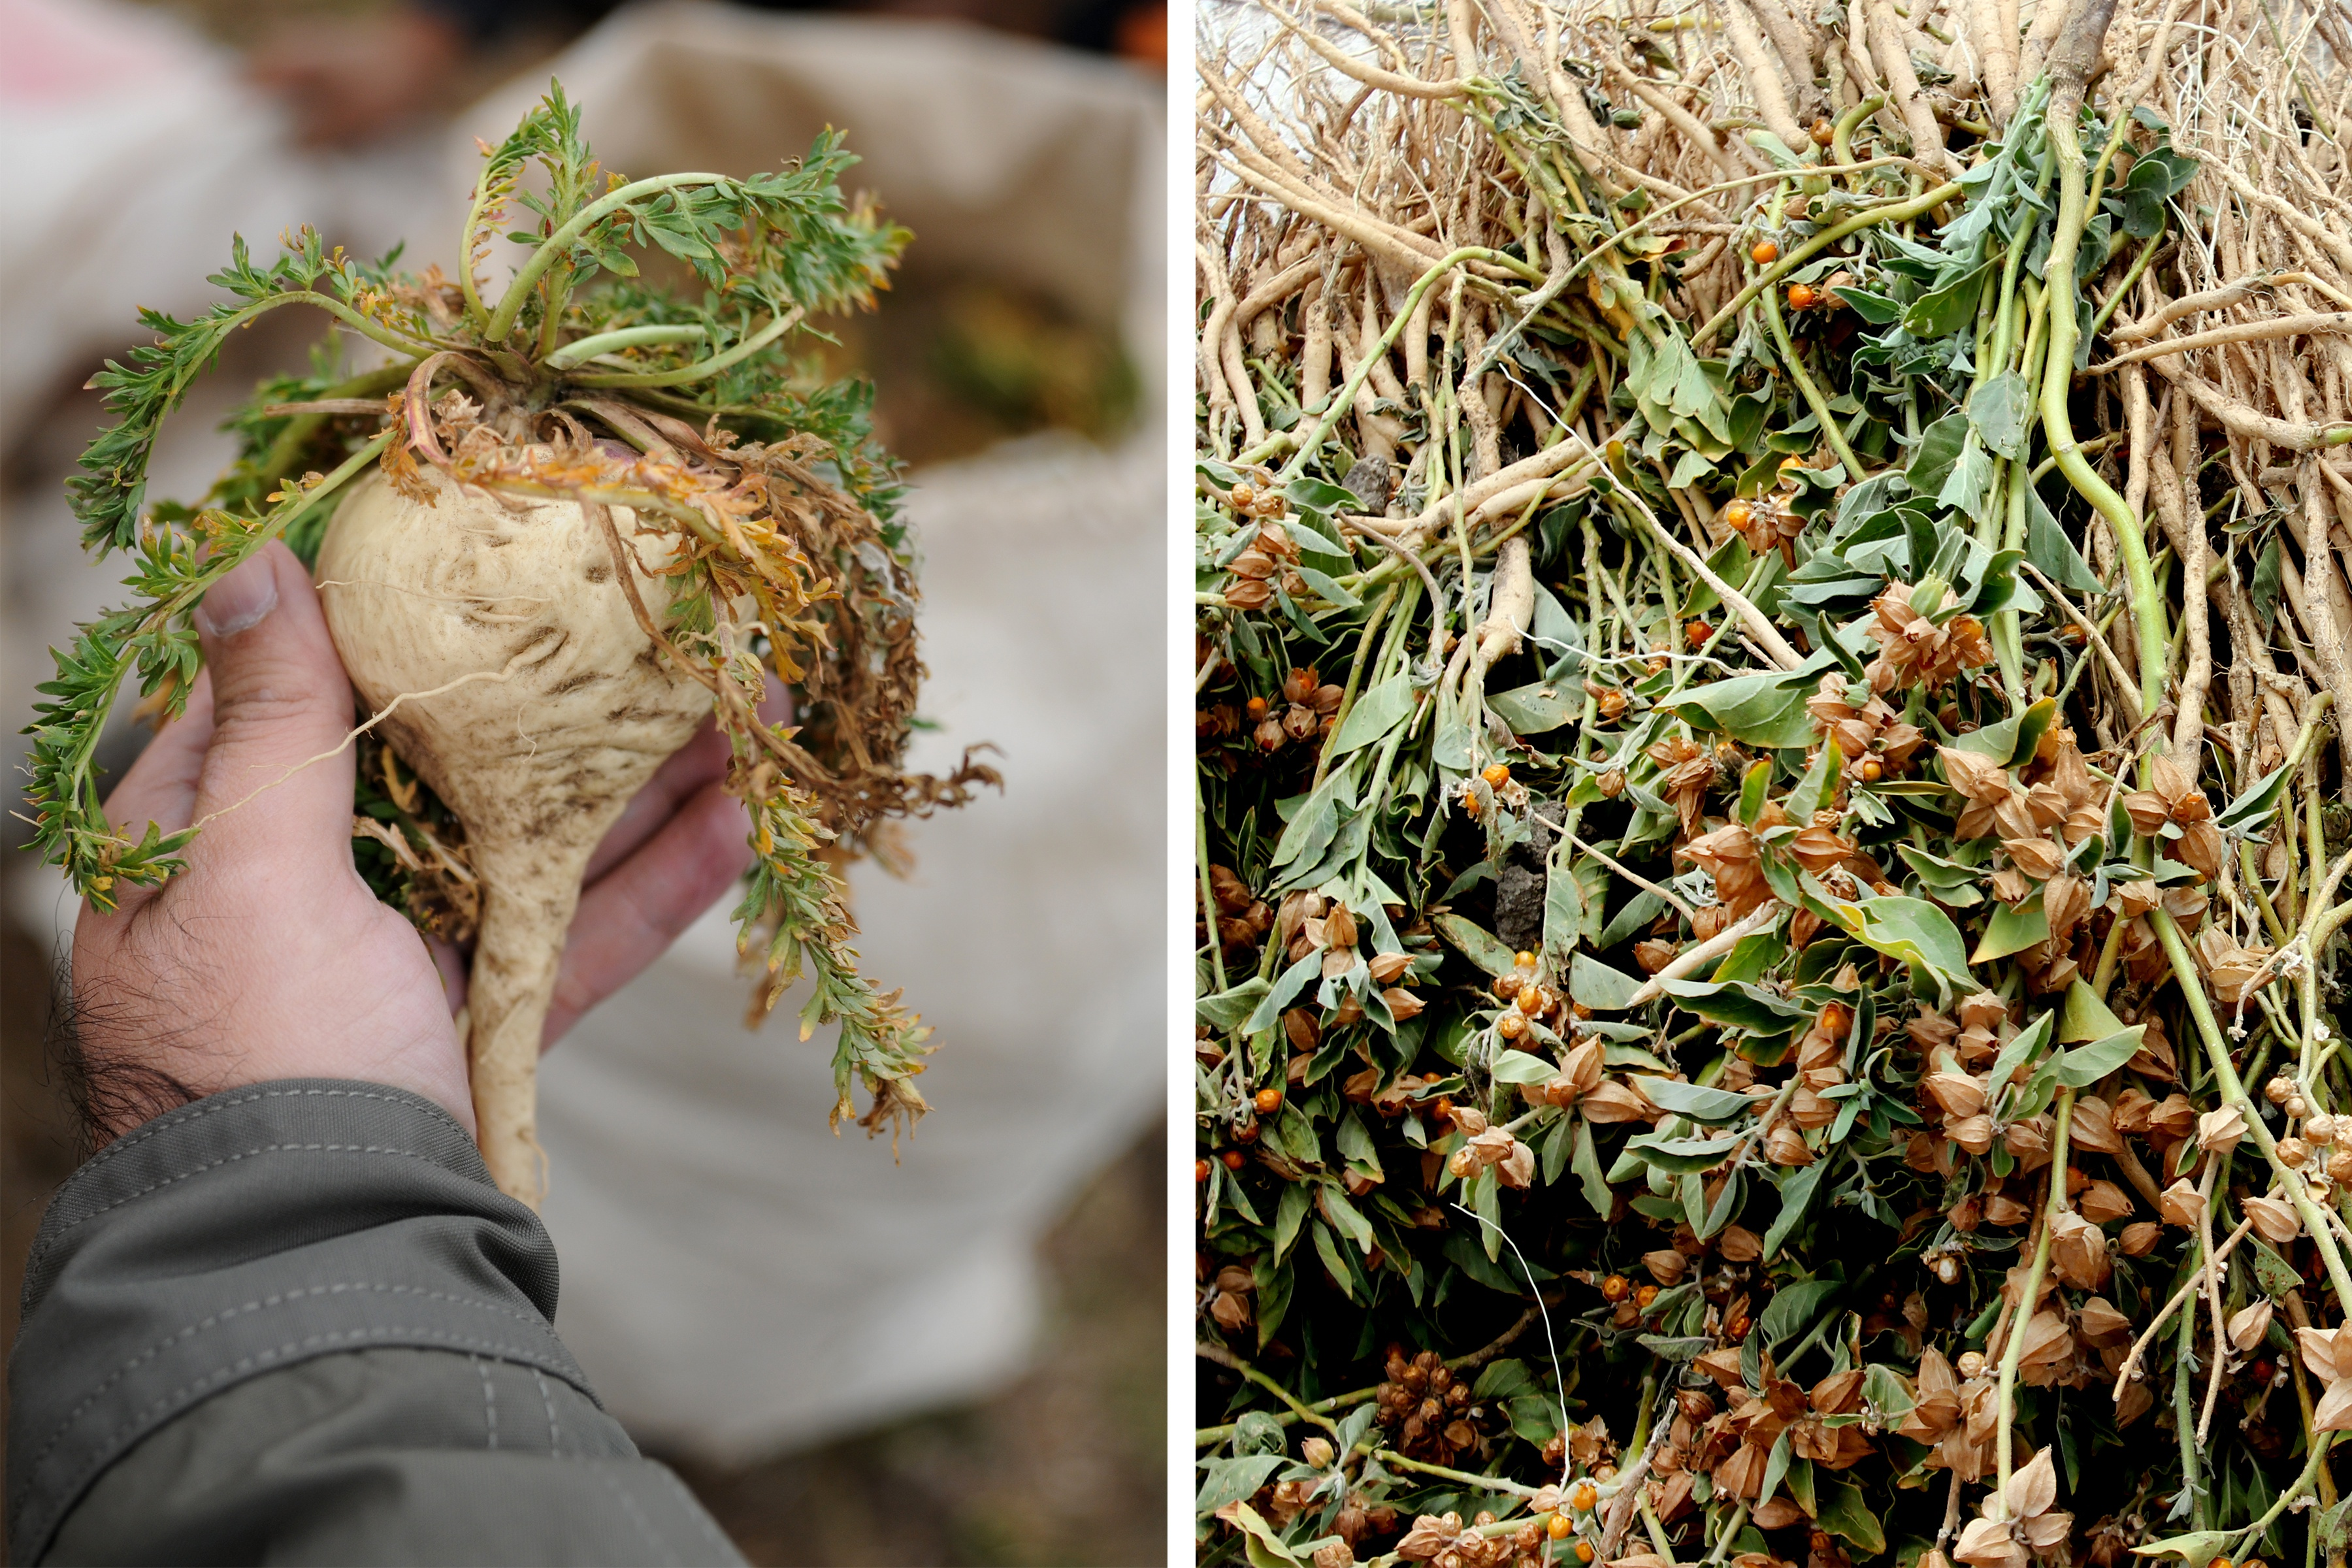 Hand holding fresh maca root and second image of ashwagandha plants laid out after harvest